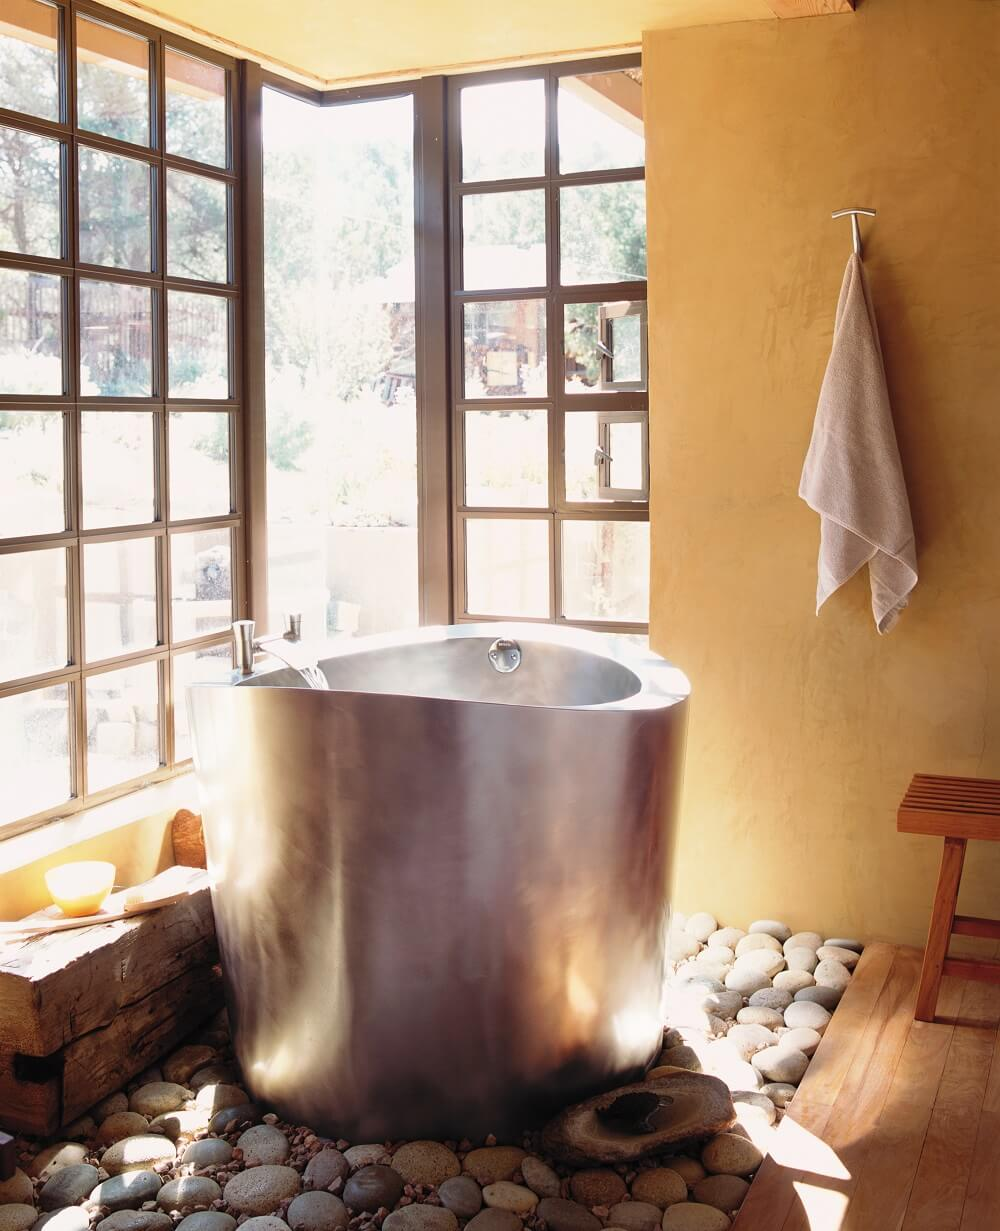 Japanese Soaking Tubs - Japanese Baths - Outdoor Soaking Tub | Diamond Spas